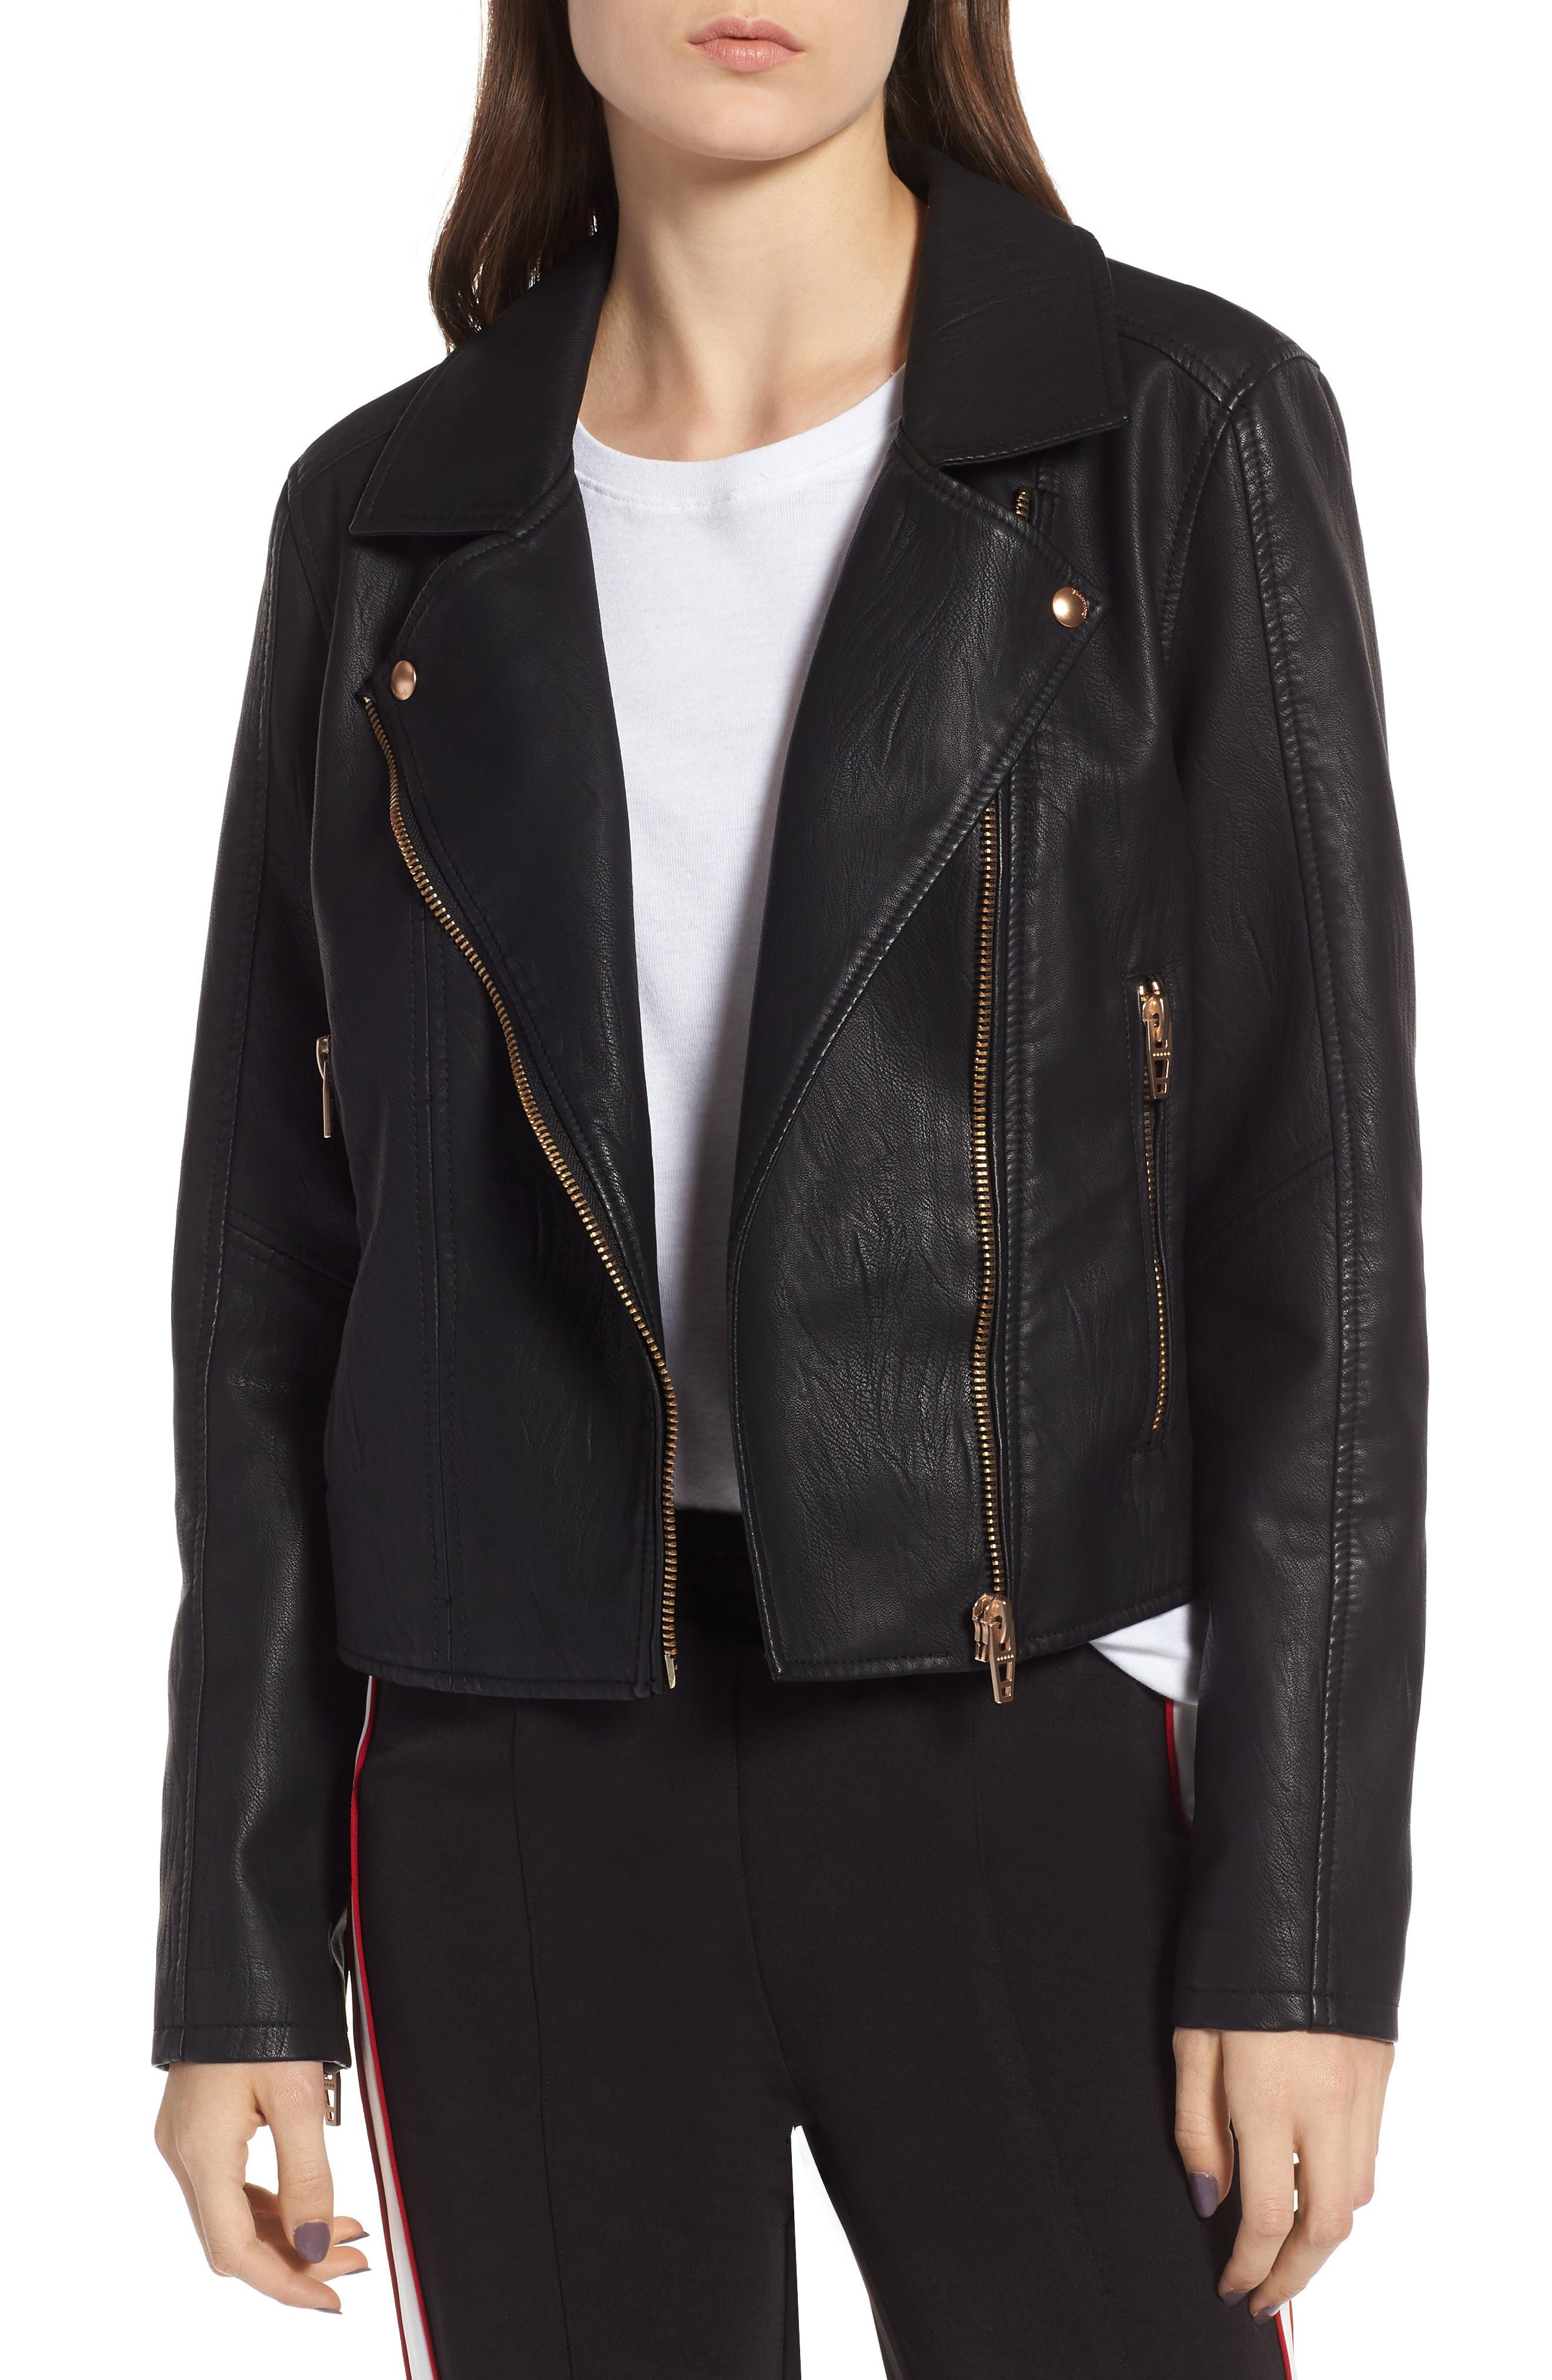 BLANKNYC, Meant to Be Moto Jacket with Removable Hood, Alternate thumbnail 5, color, BLACK